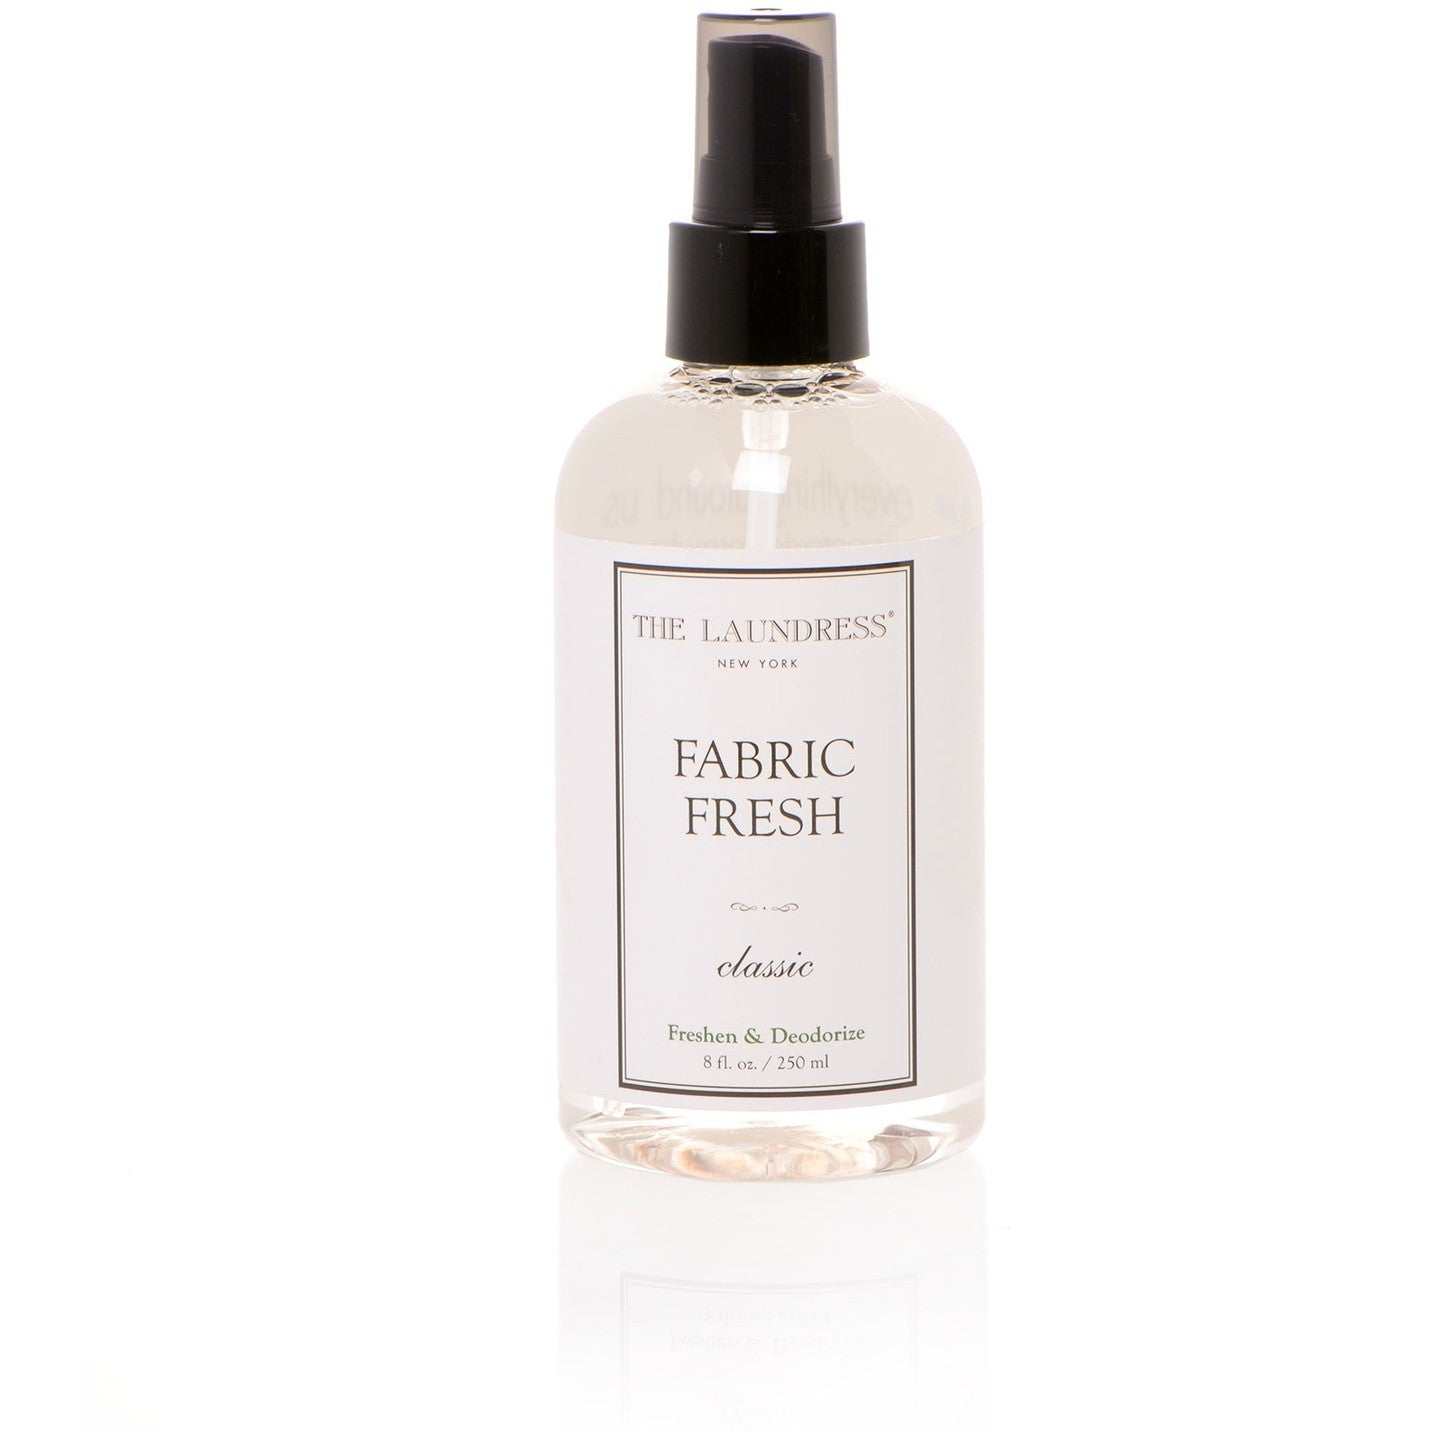 the laundress | fabric fresh, classic spray[product_type ]the laundress - Kiss and Makeup